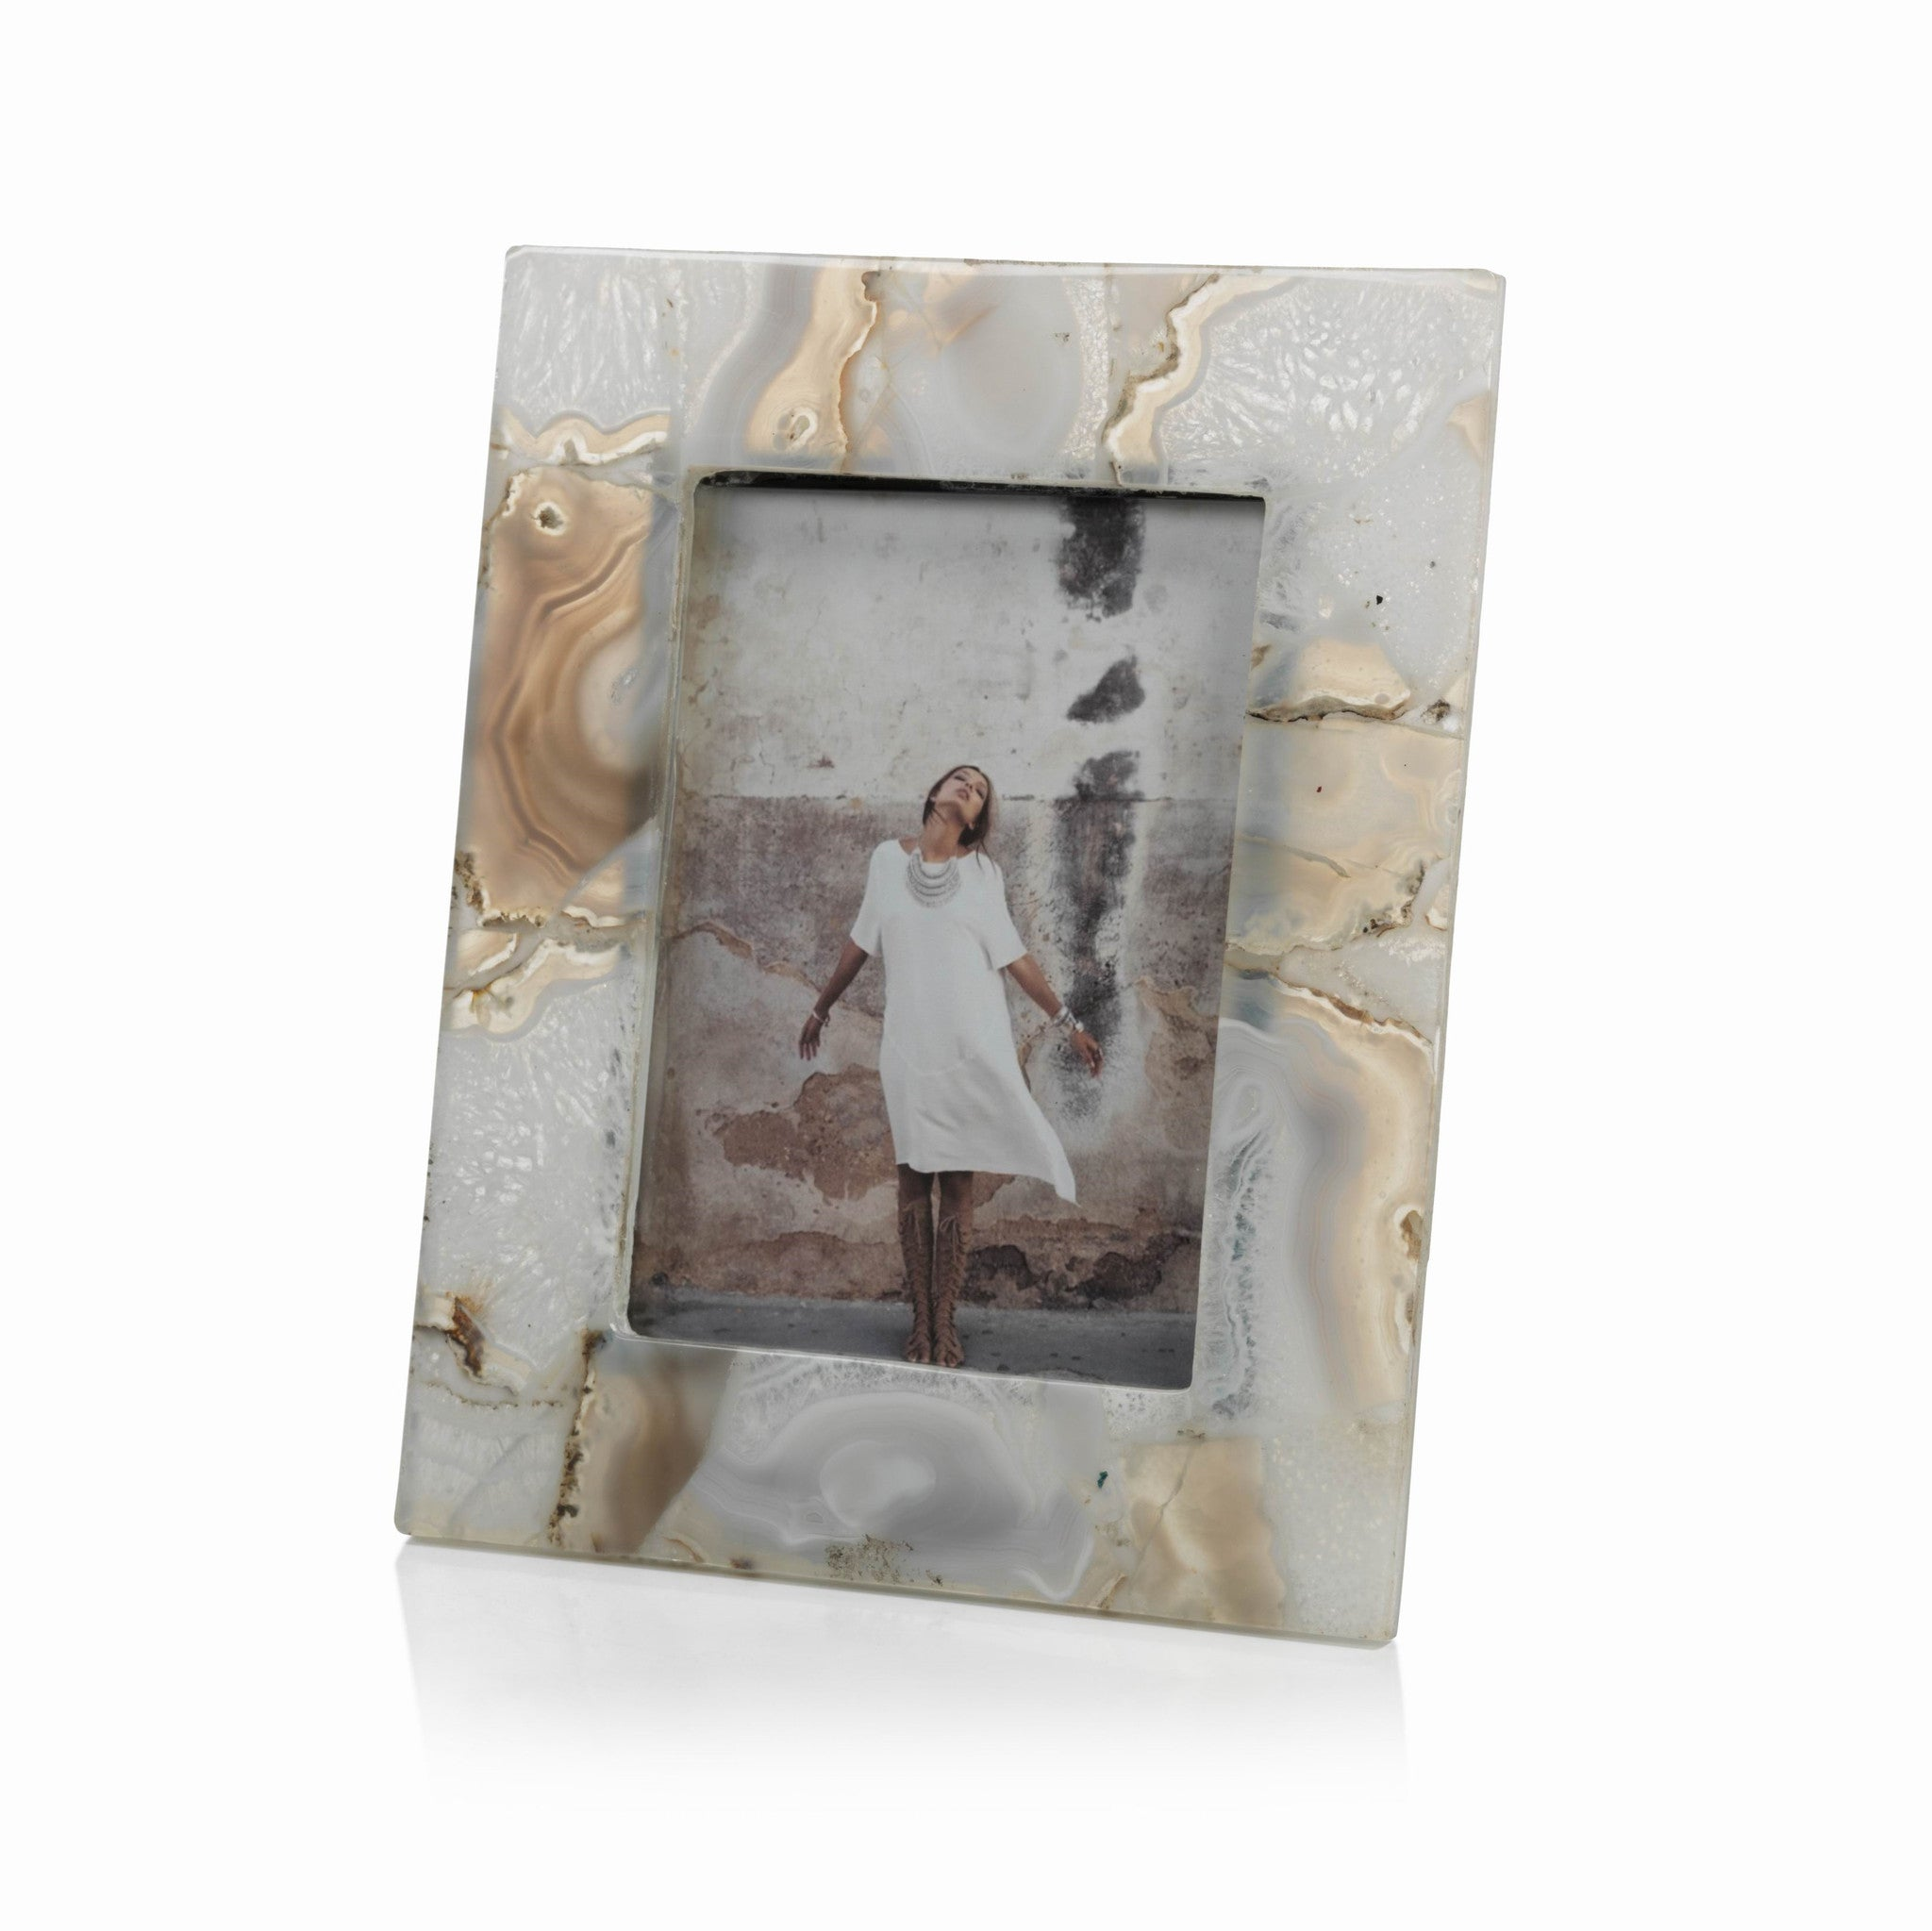 Preto Agate Photo Frame - CARLYLE AVENUE